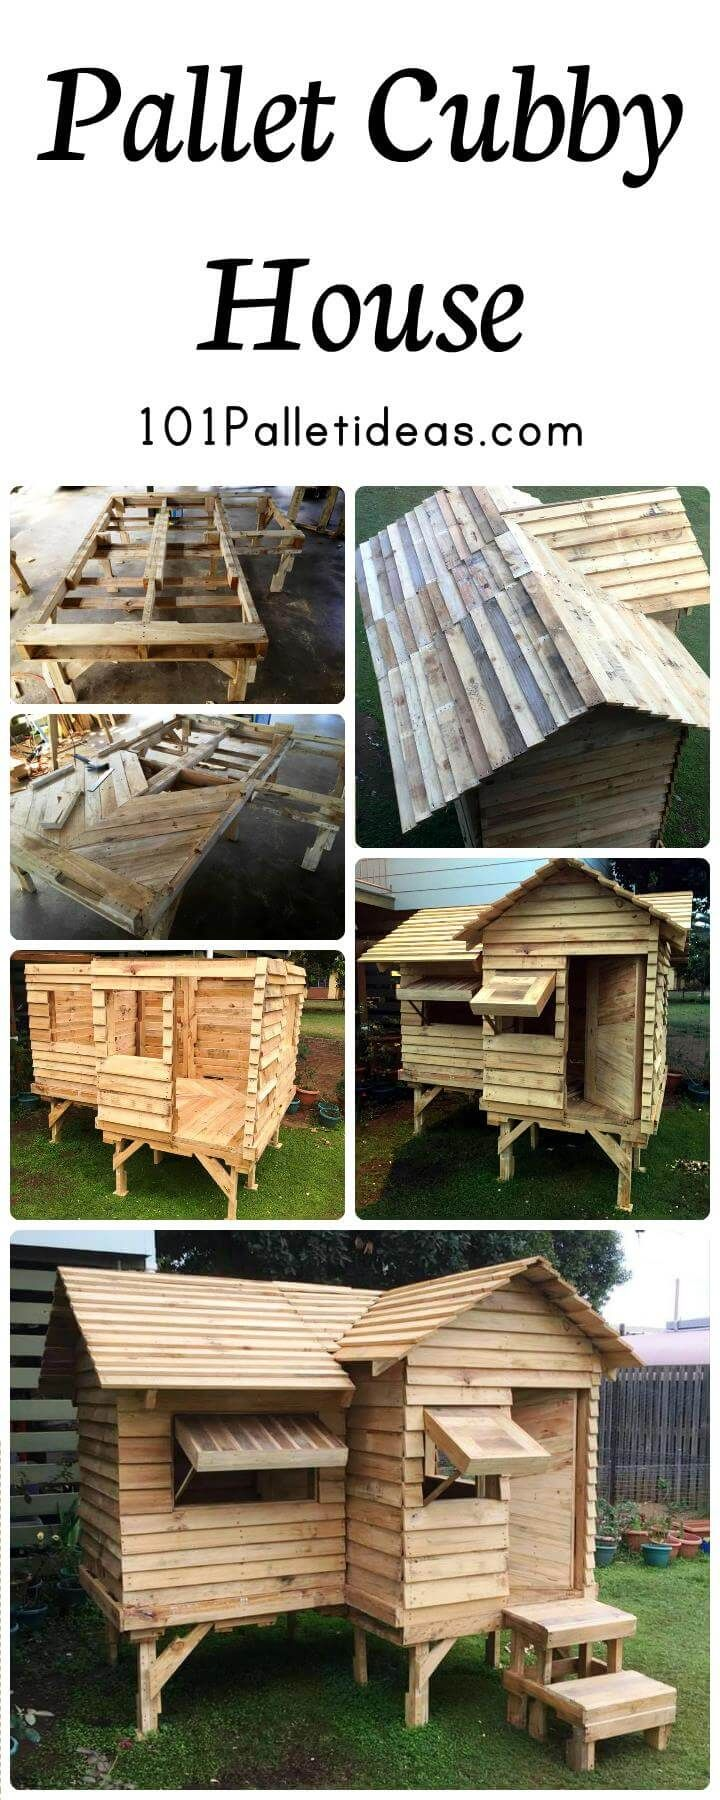 Pallet-Cubby-House-or-Pallet-Playhouse.jpg (720×1800)